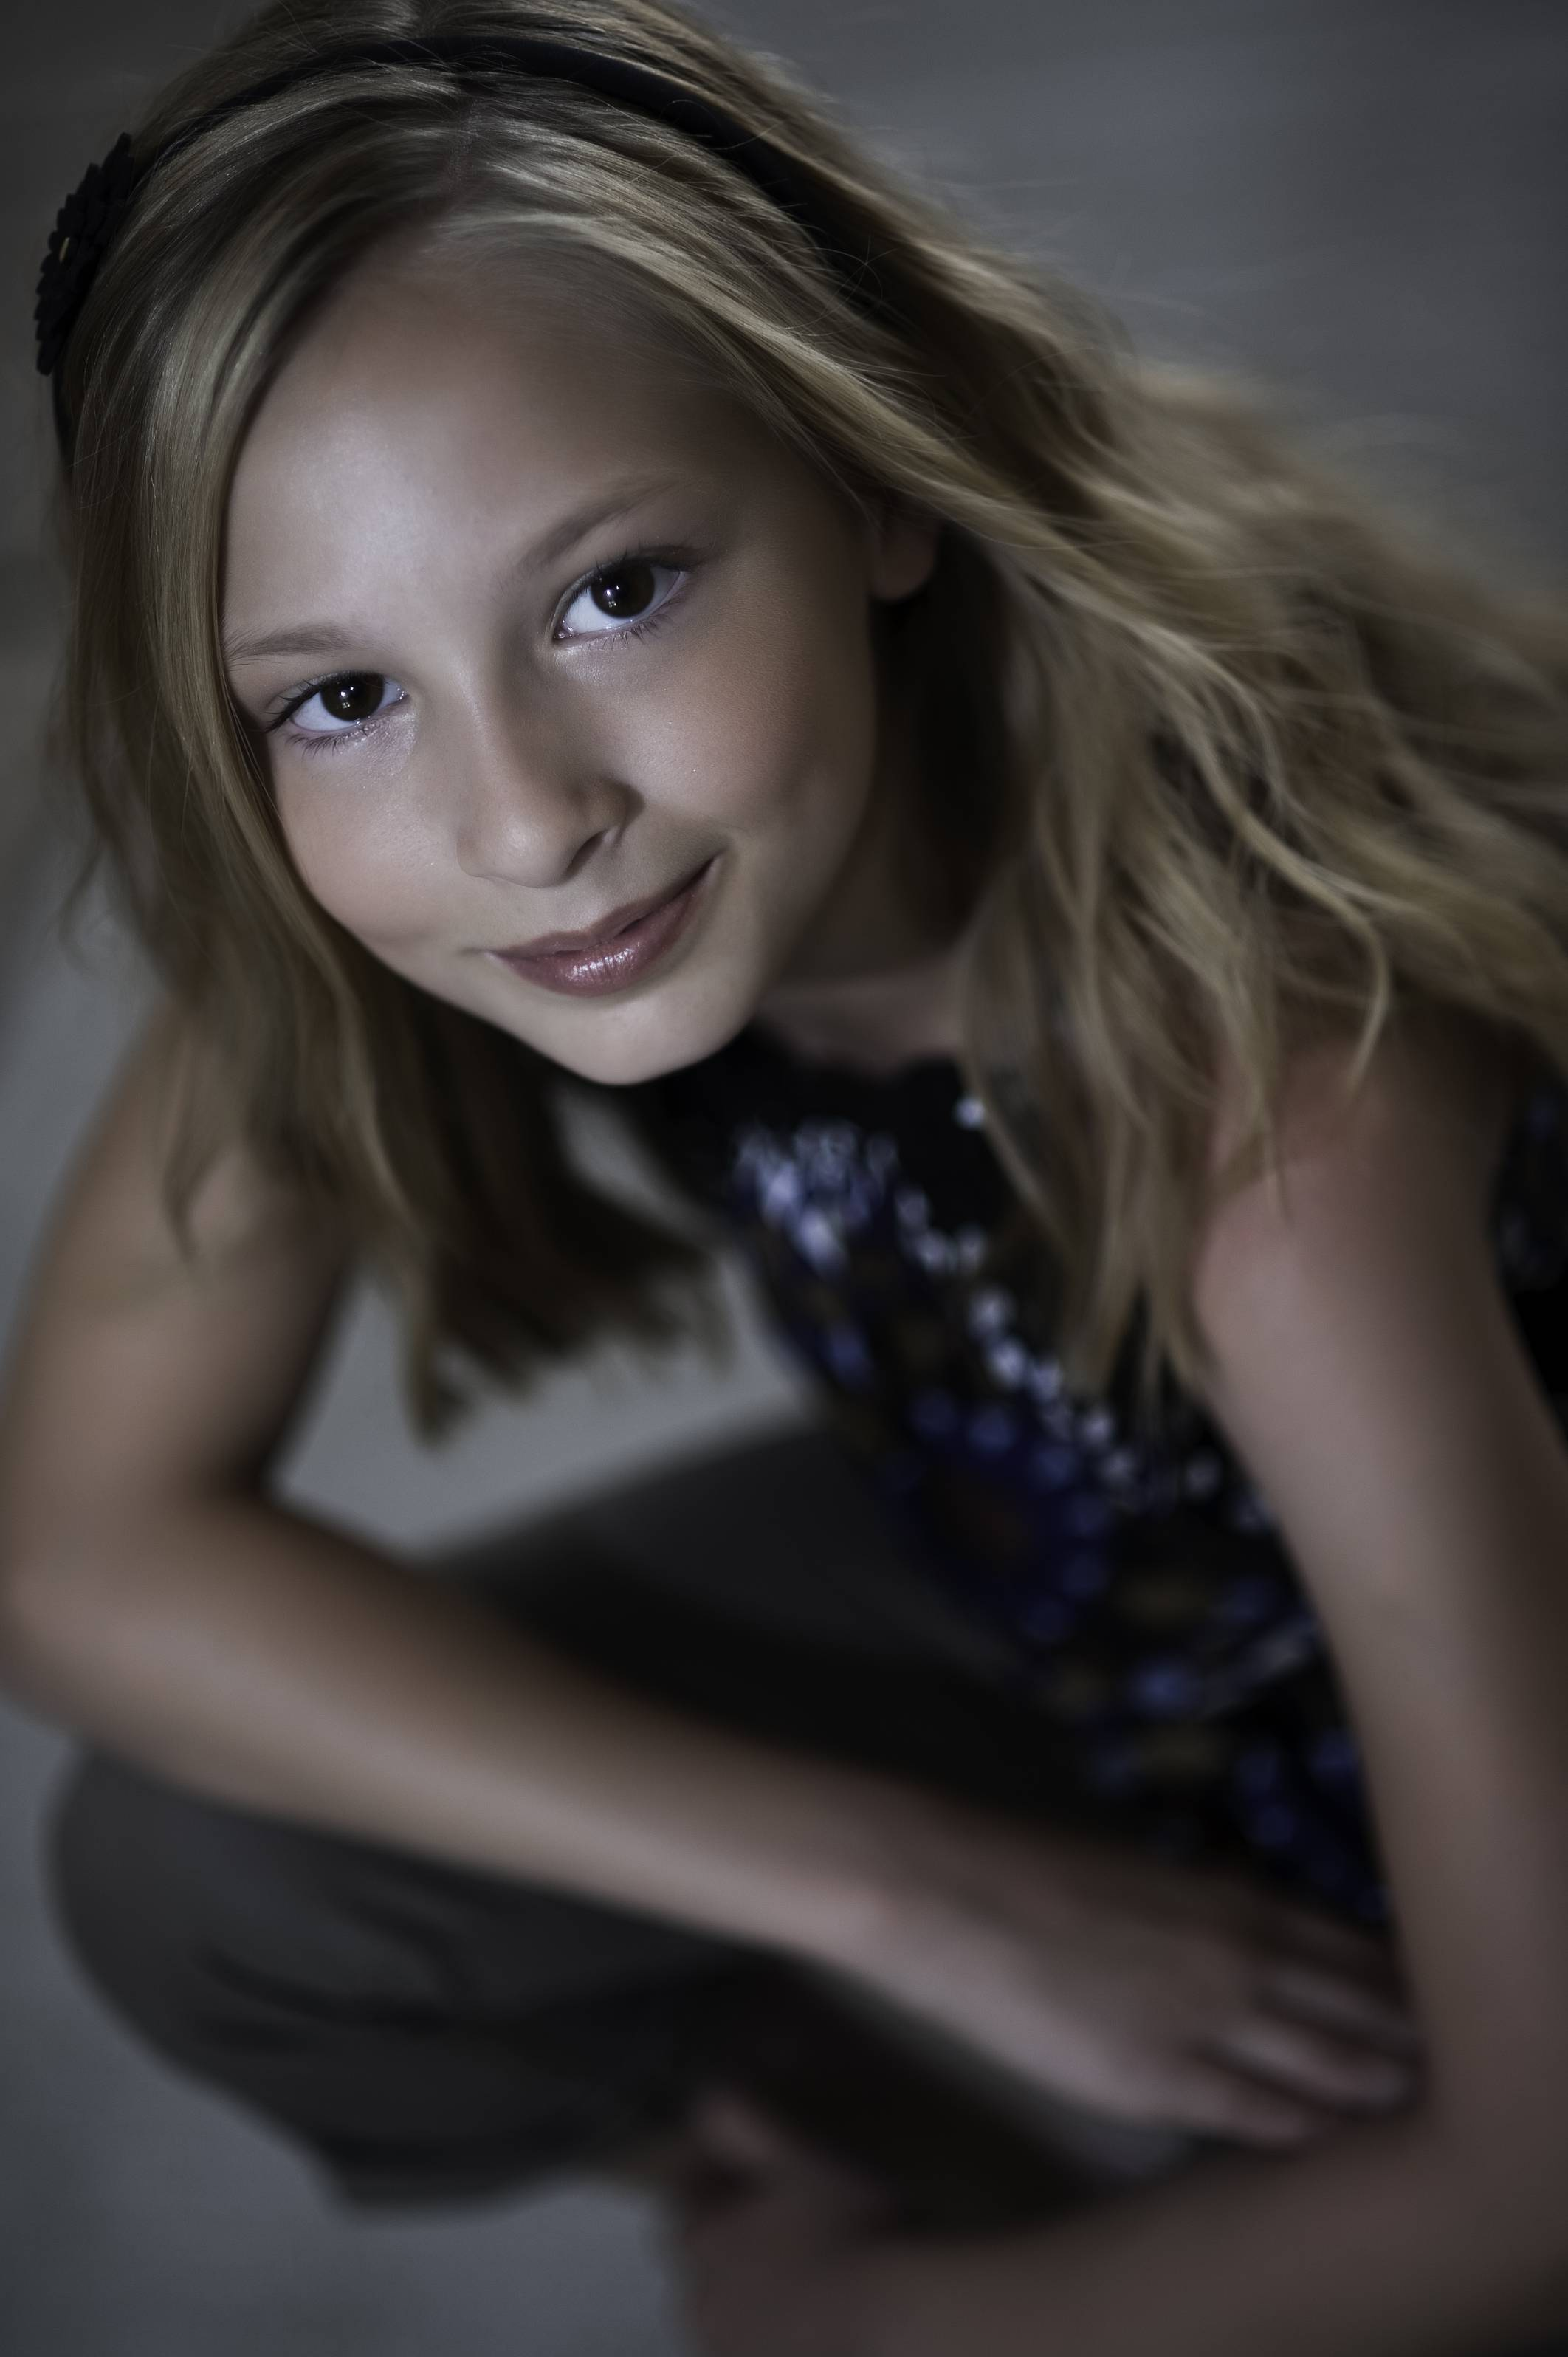 A child actress poses for a portrait